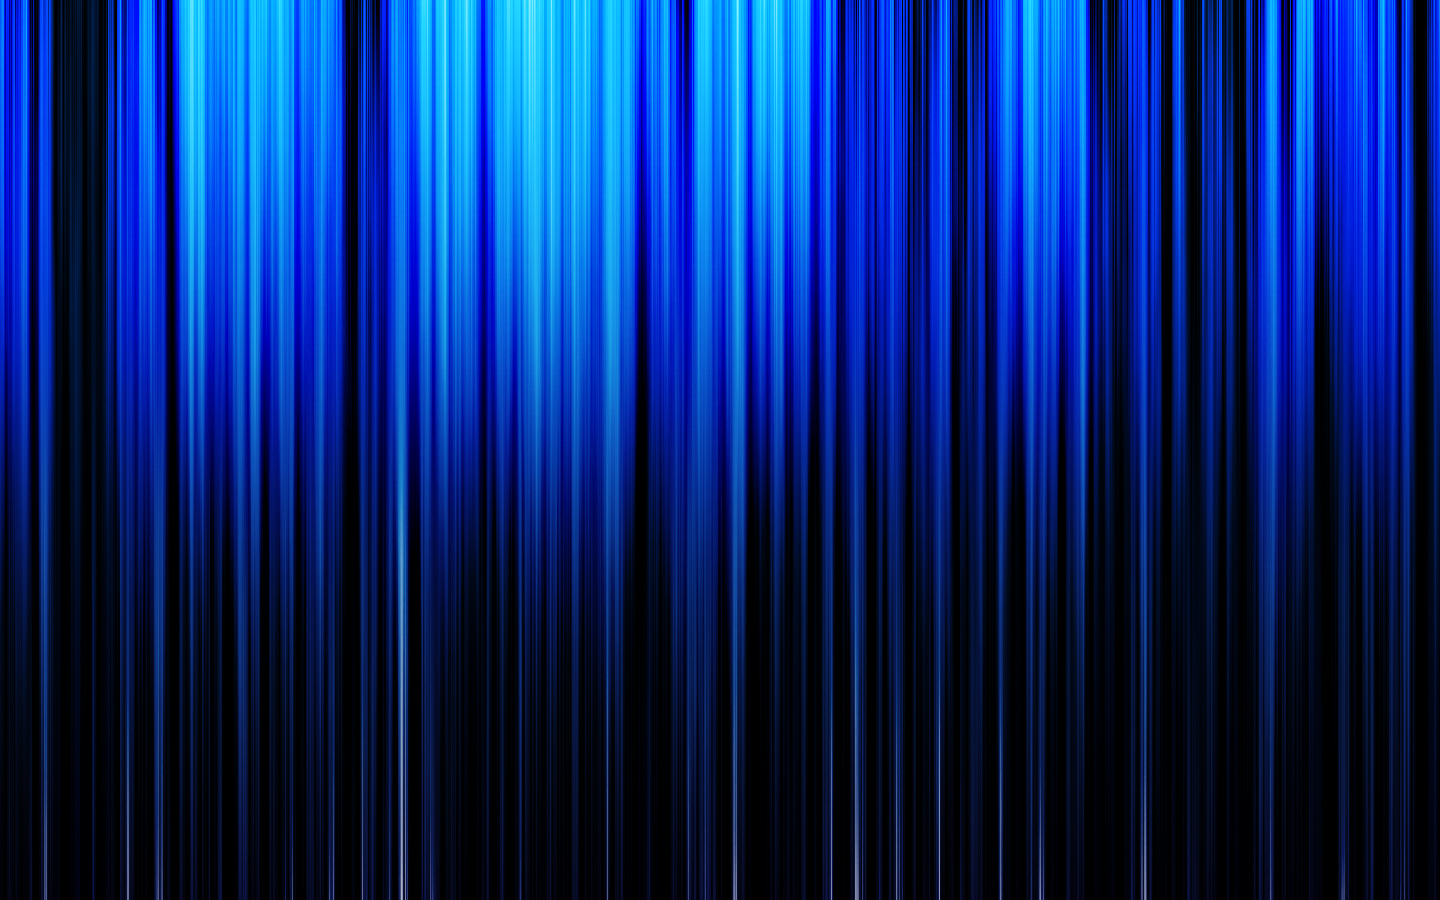 black background hd download Black And Blue Backgrounds 1440x900